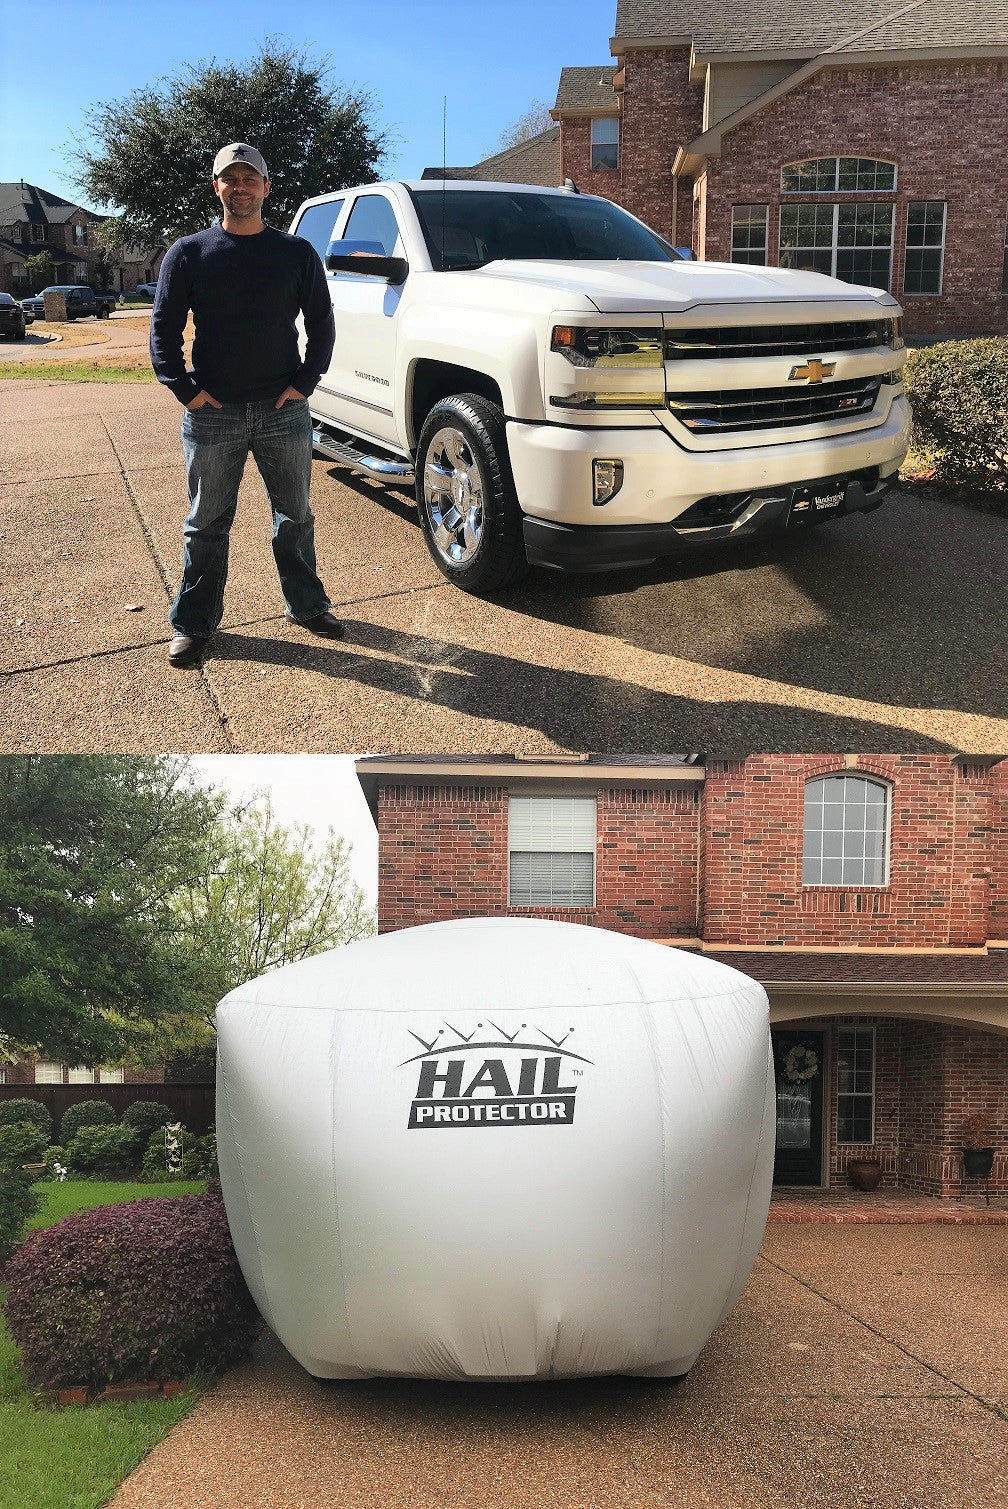 SUV2 HAIL PROTECTOR Truck + SUV (198 to 233 inches)